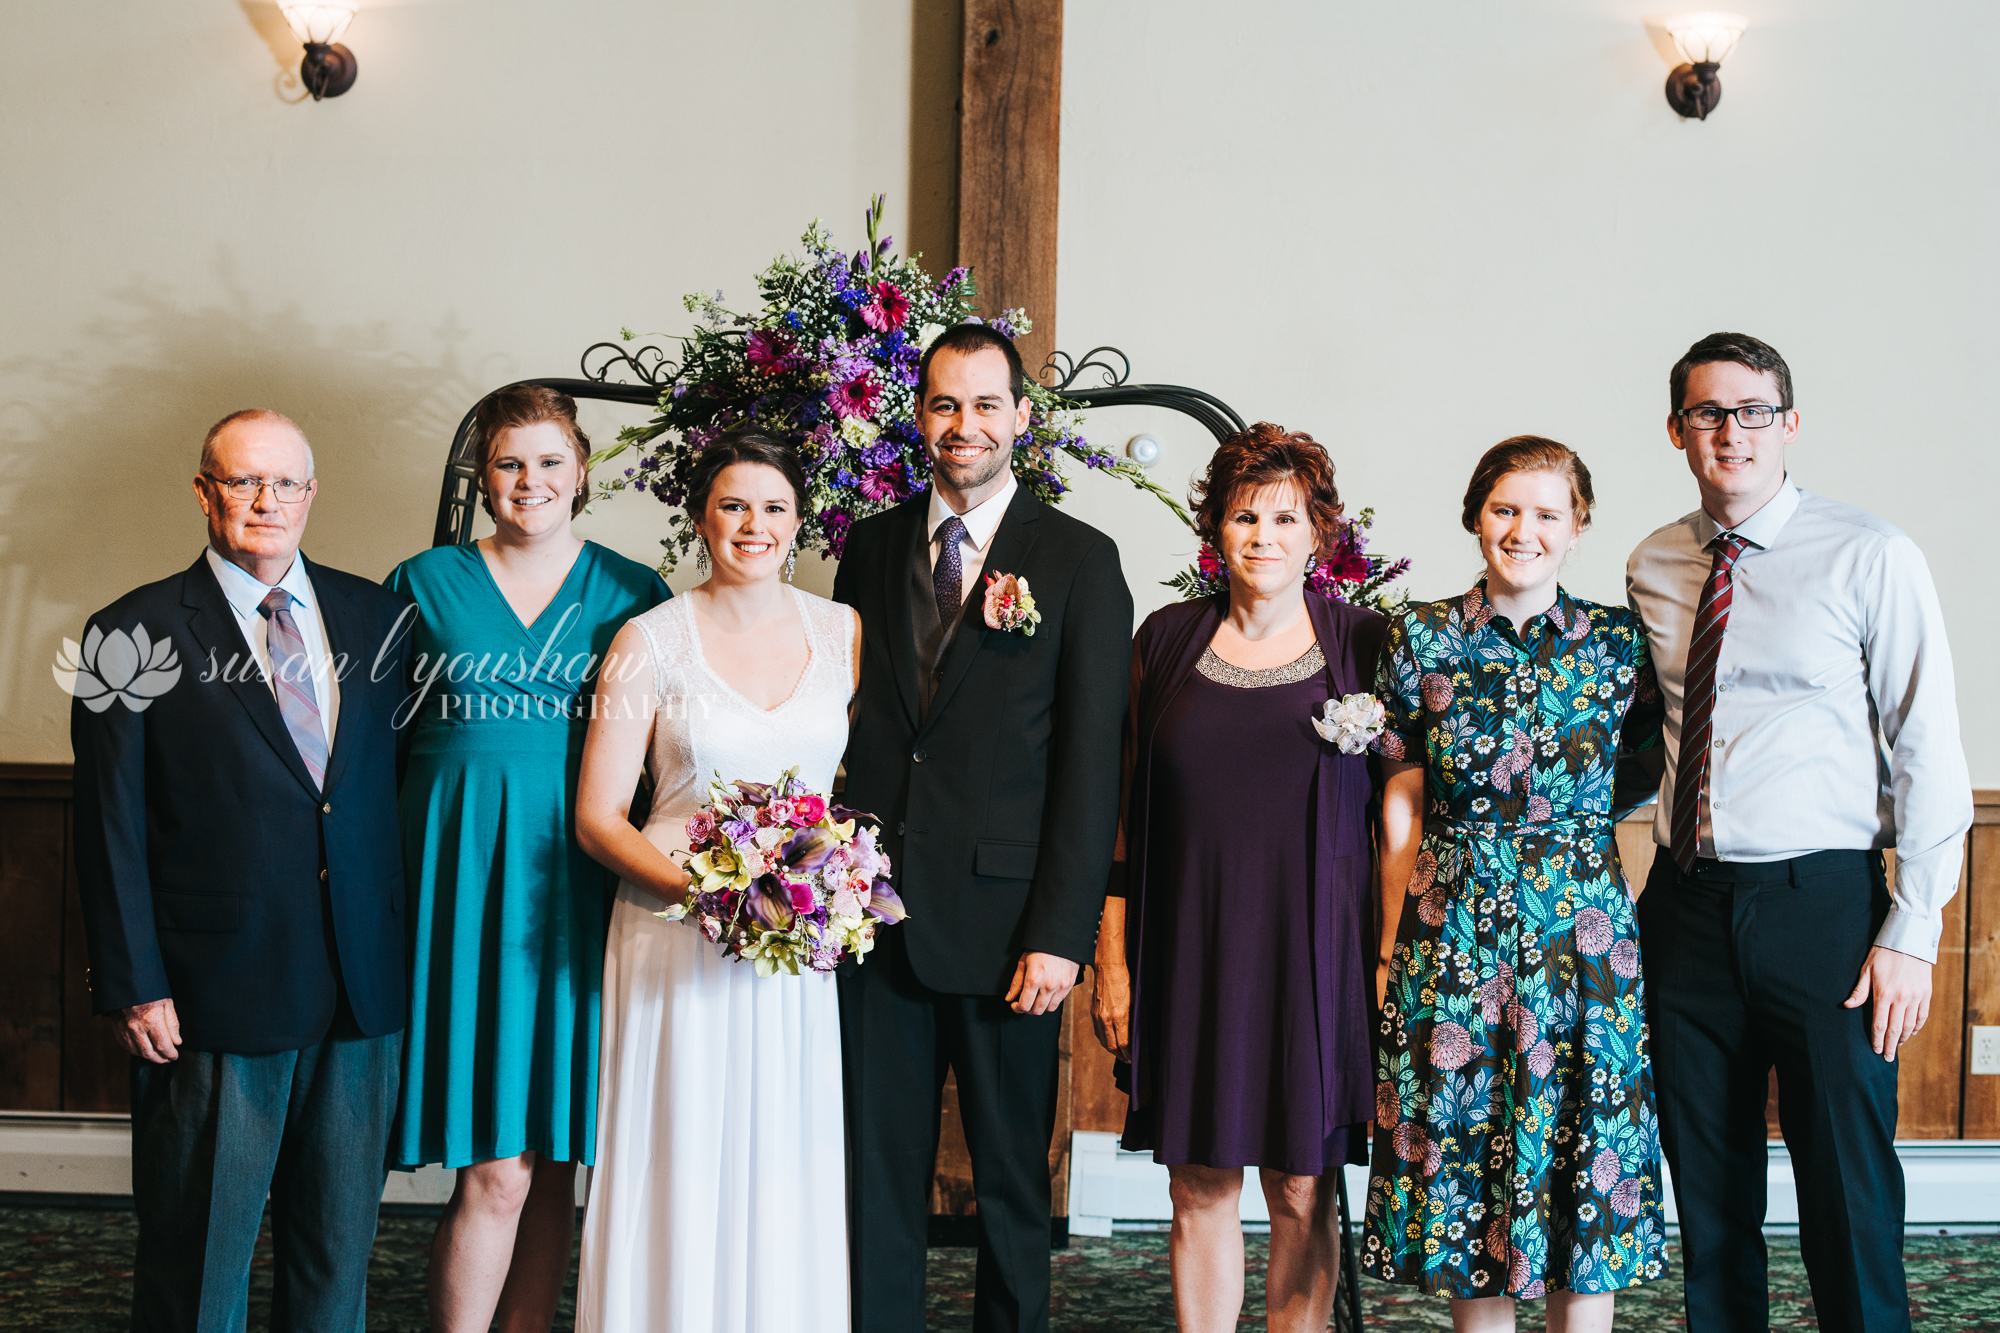 Adena and  Erik Wedding 05-17-2019 SLY Photography-48.jpg